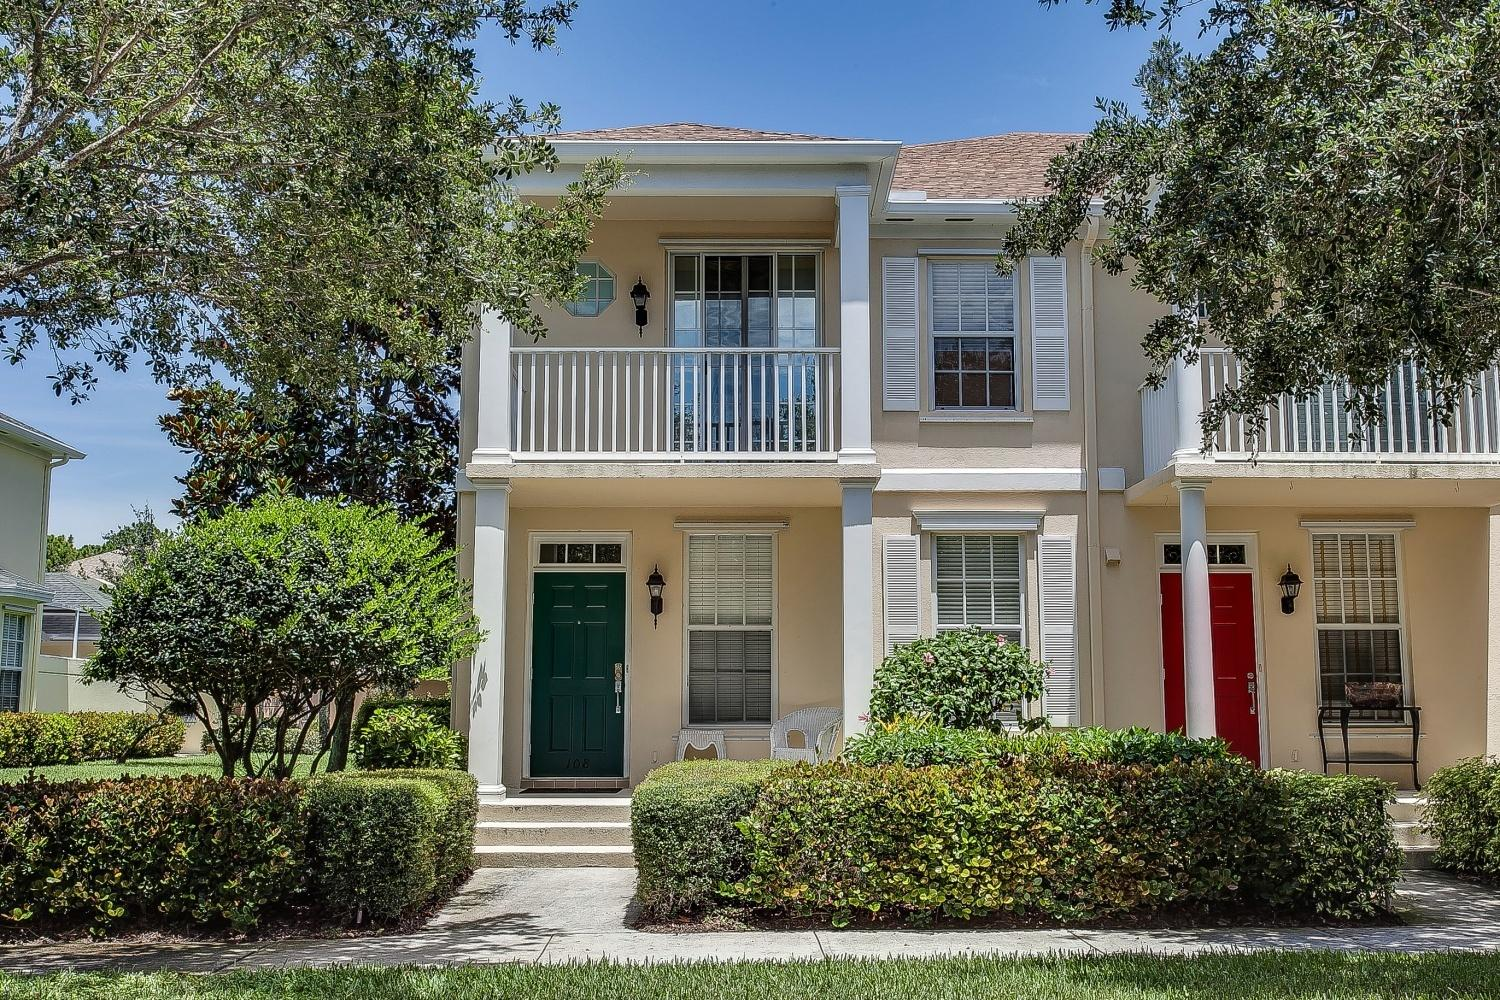 108 Waterford Drive, Jupiter, Florida 33458, 3 Bedrooms Bedrooms, ,2.1 BathroomsBathrooms,A,Townhouse,Waterford,RX-10474738